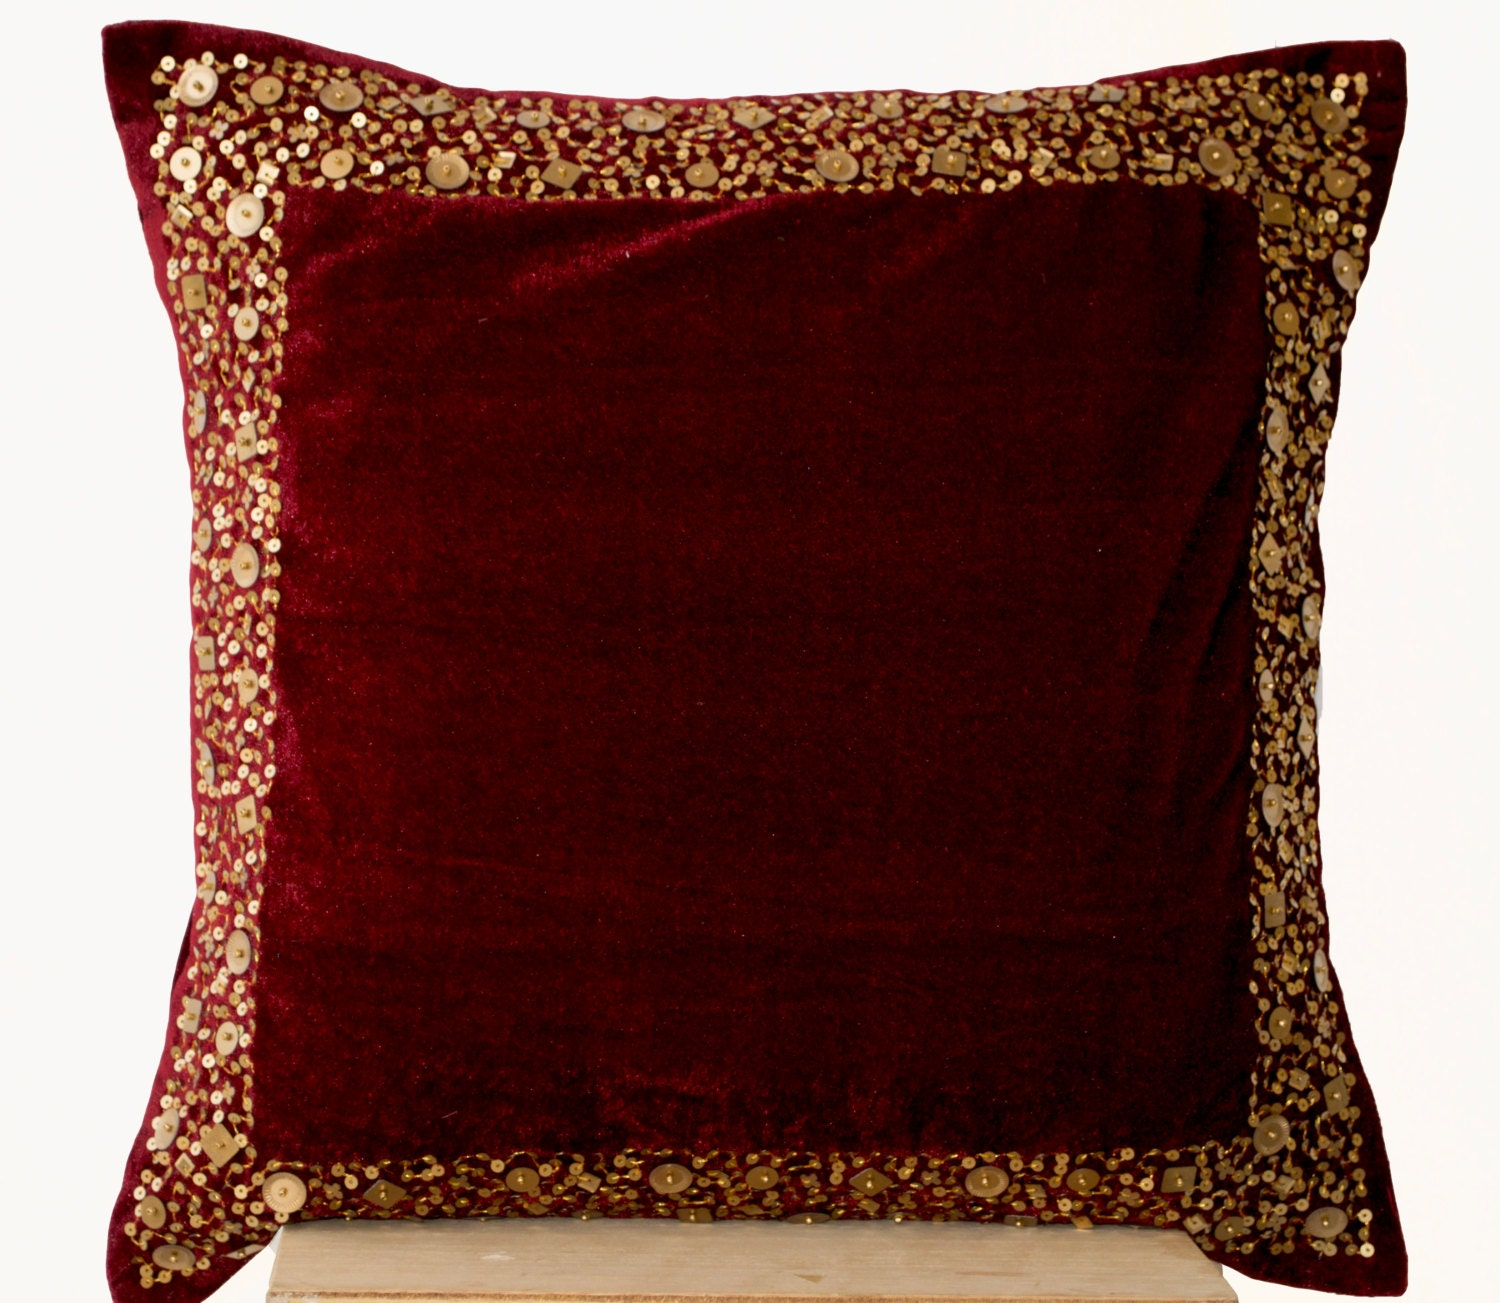 Throw Pillows Maroon : Velvet Throw Pillow Maroon Velvet cushion with gold sequin